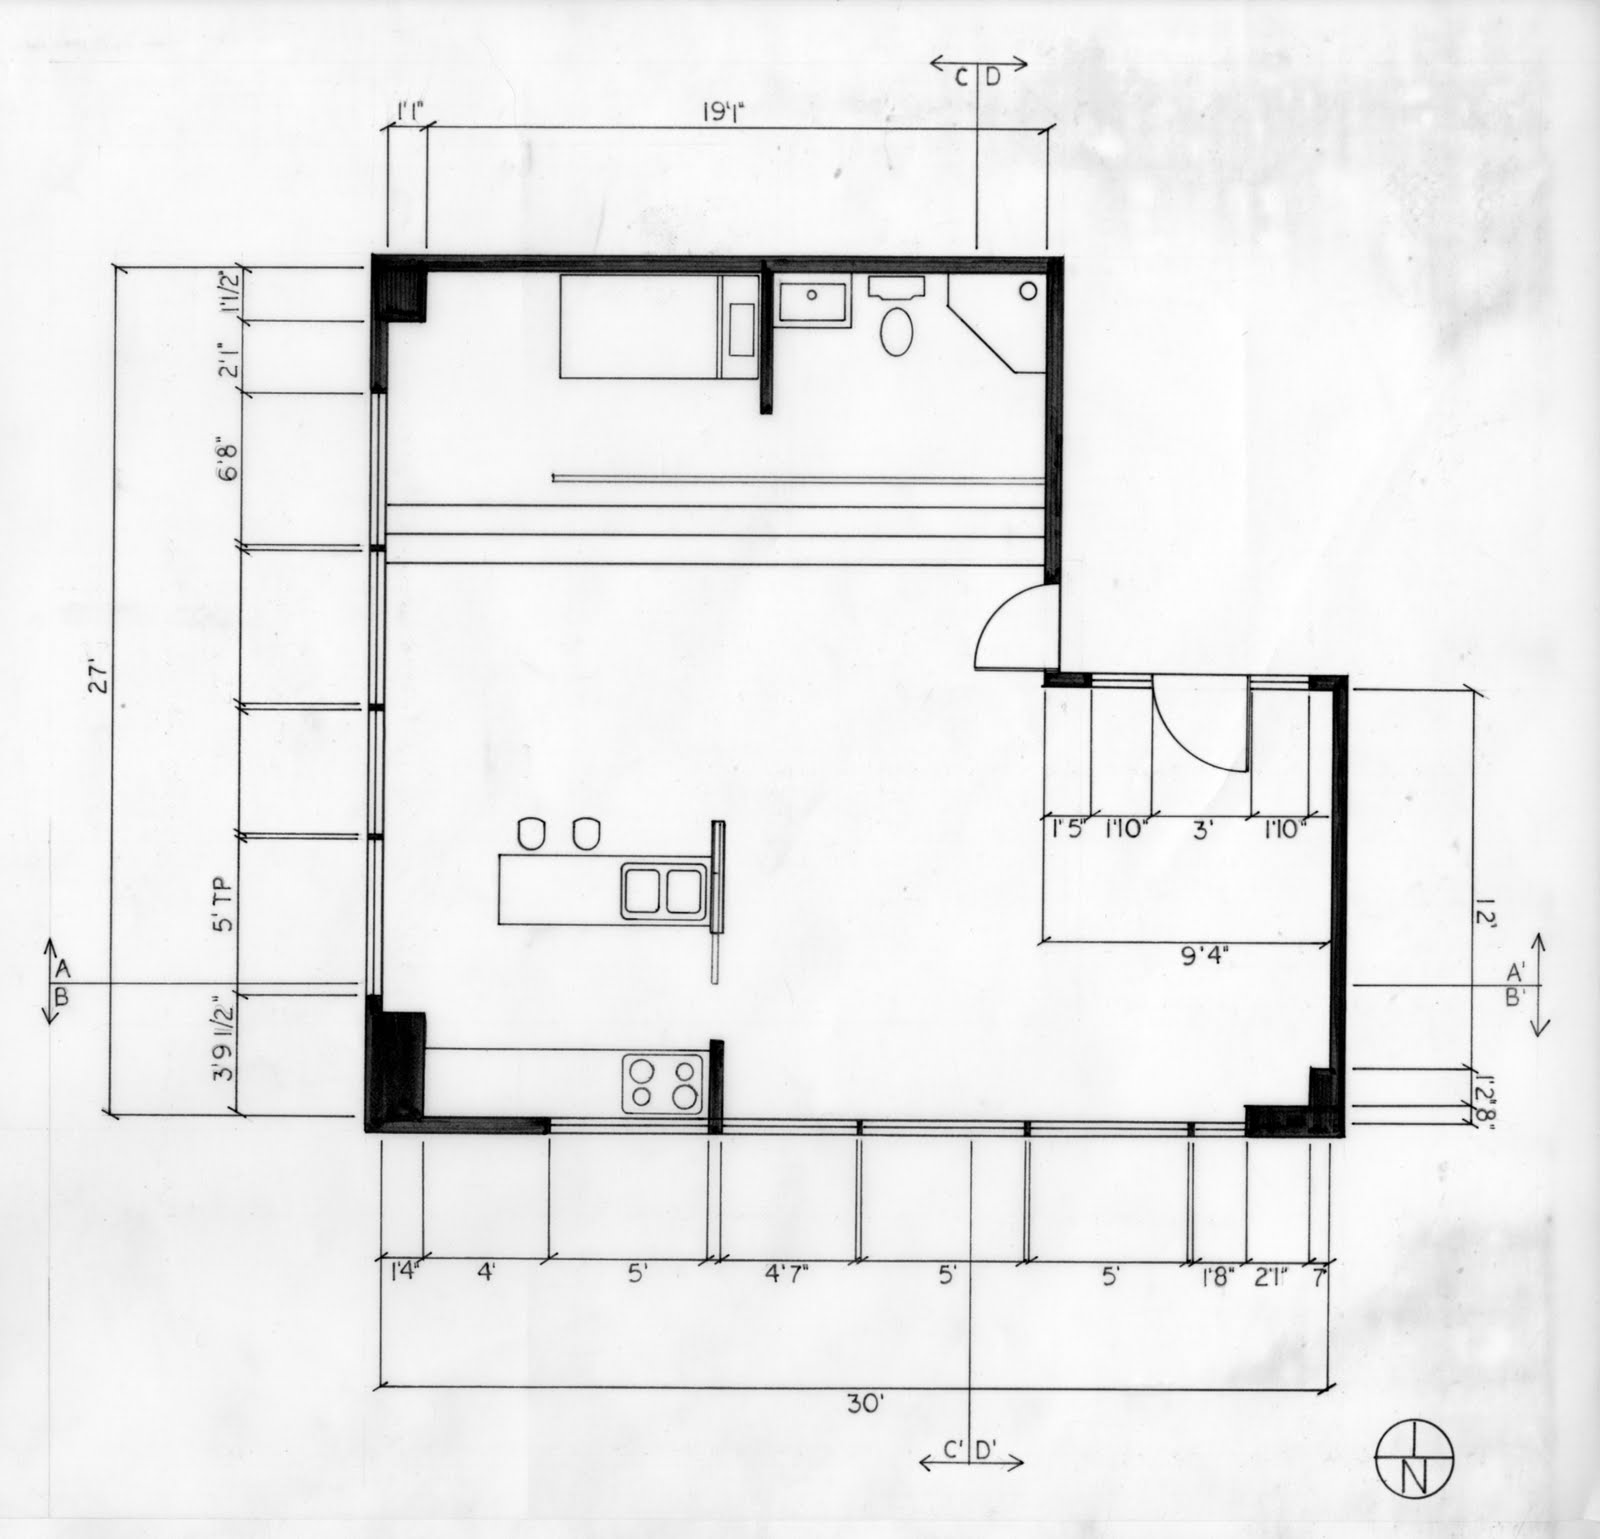 Floor Plan Elevation And Section : Cmb studio space final floor plan and section elevation